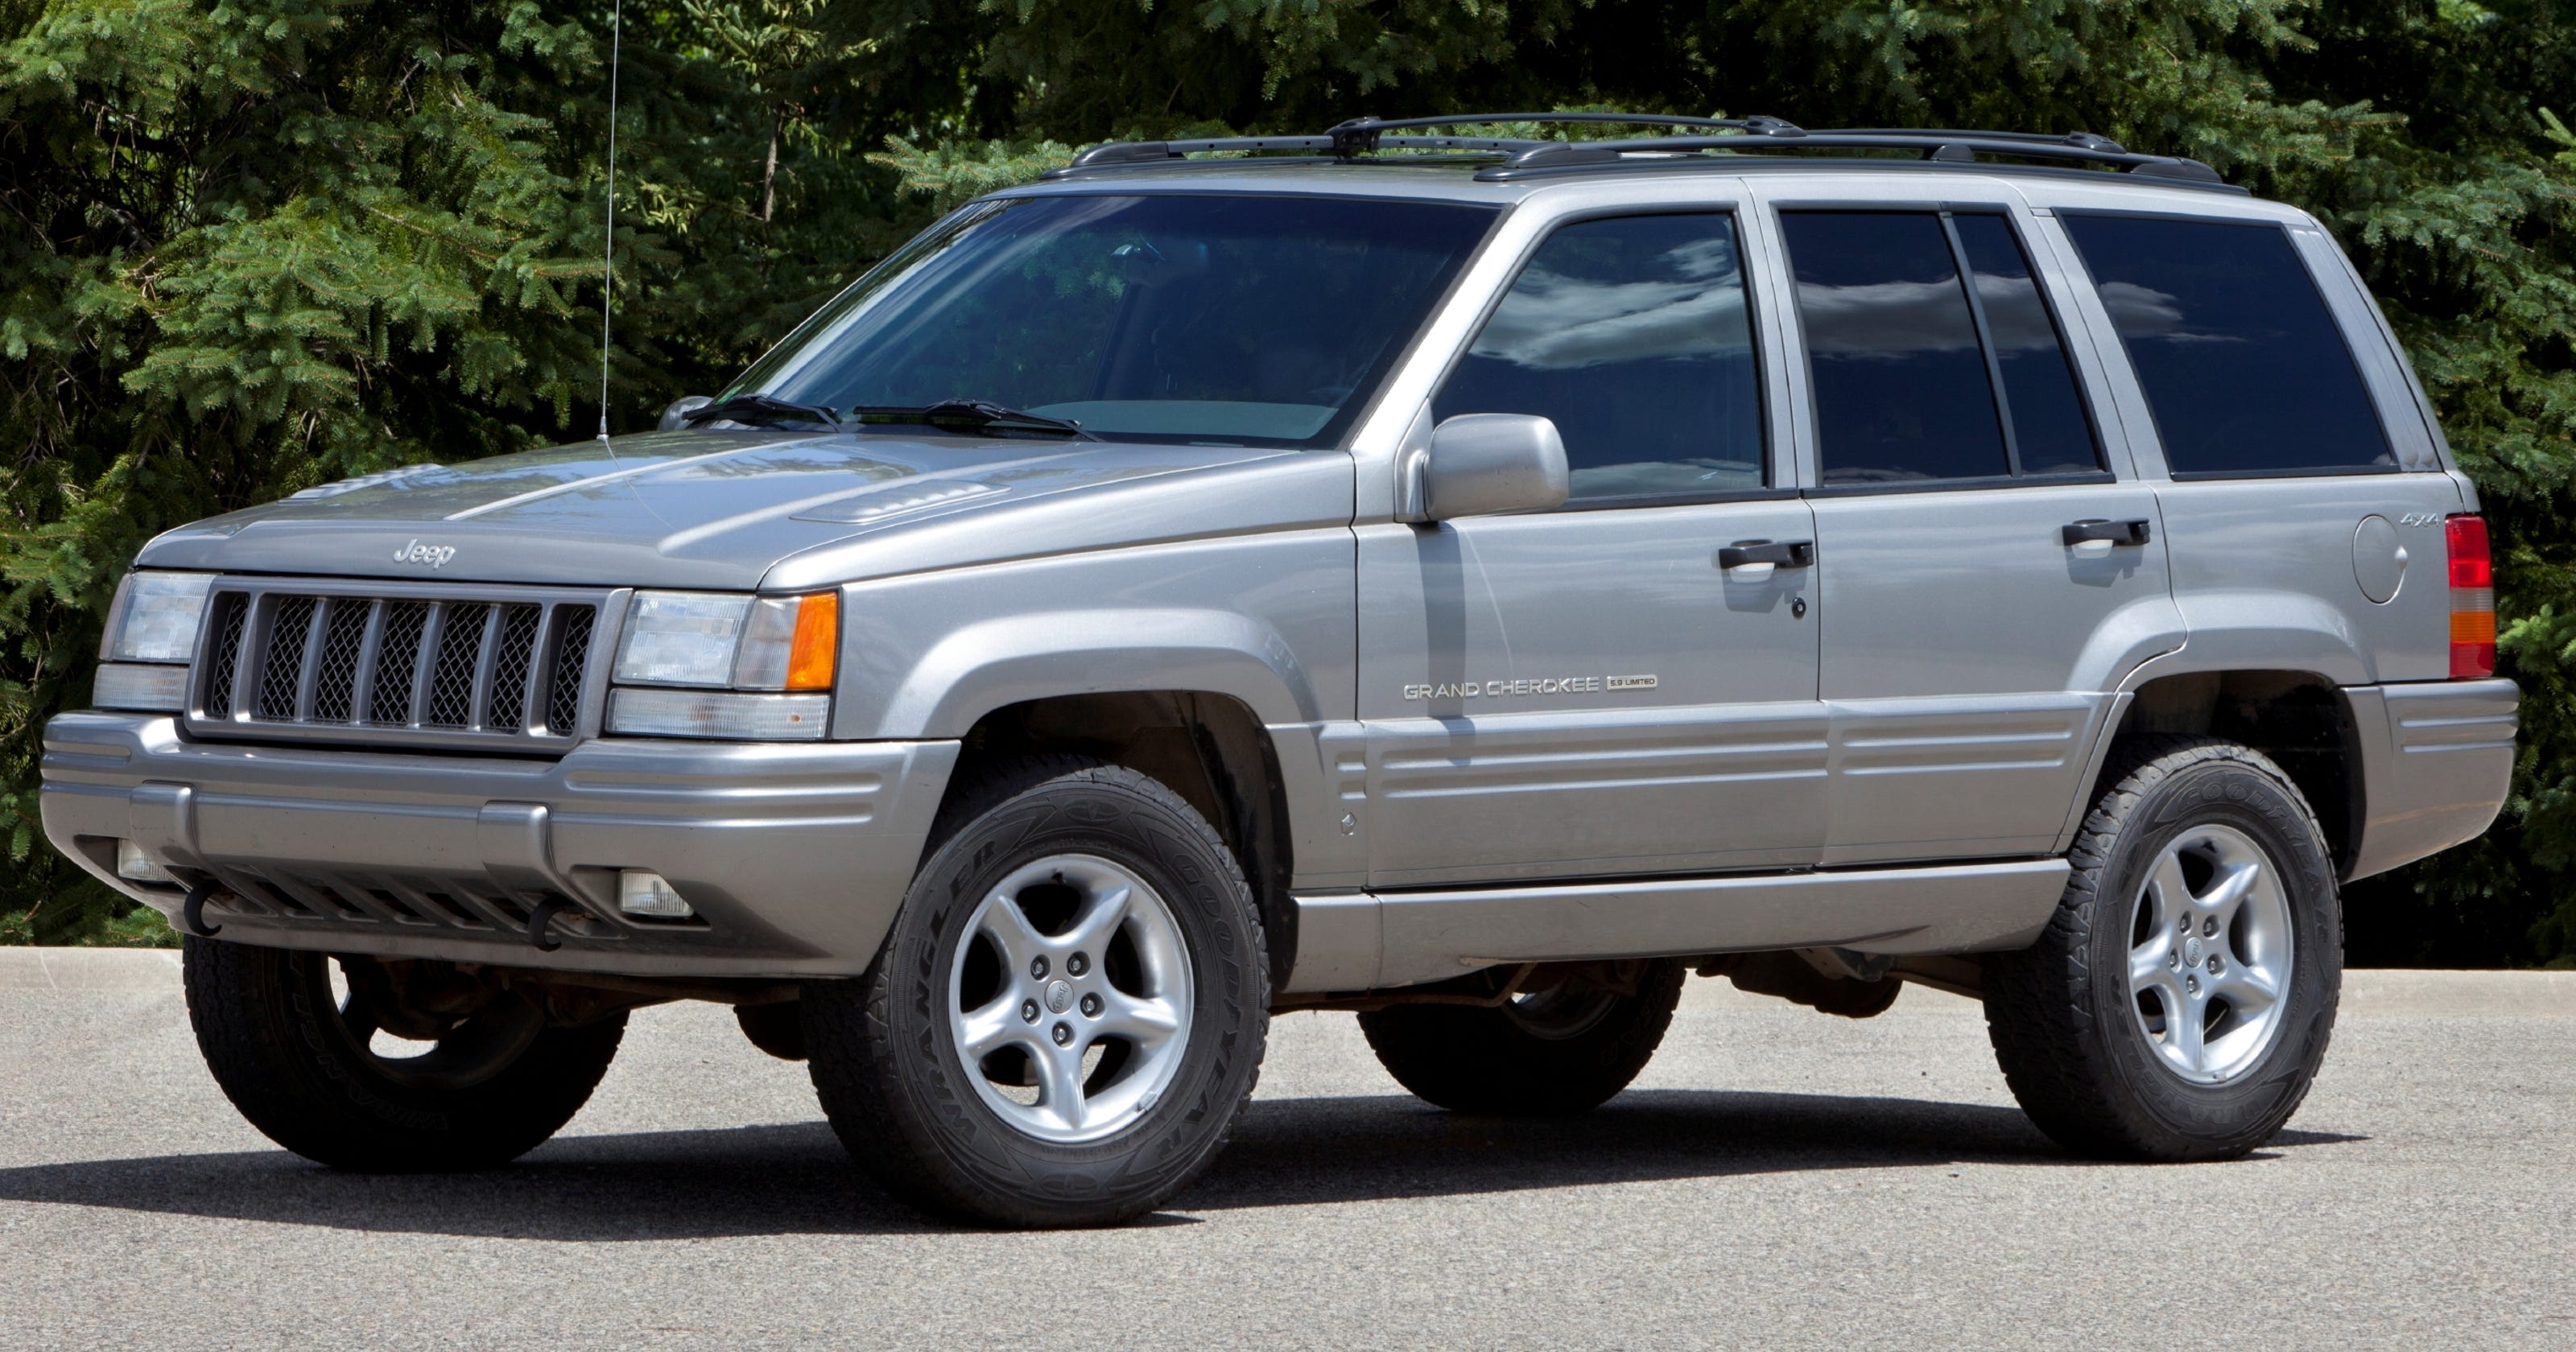 bc58a047fac Shocker: Chrysler tells feds 'no' on Jeep recall request